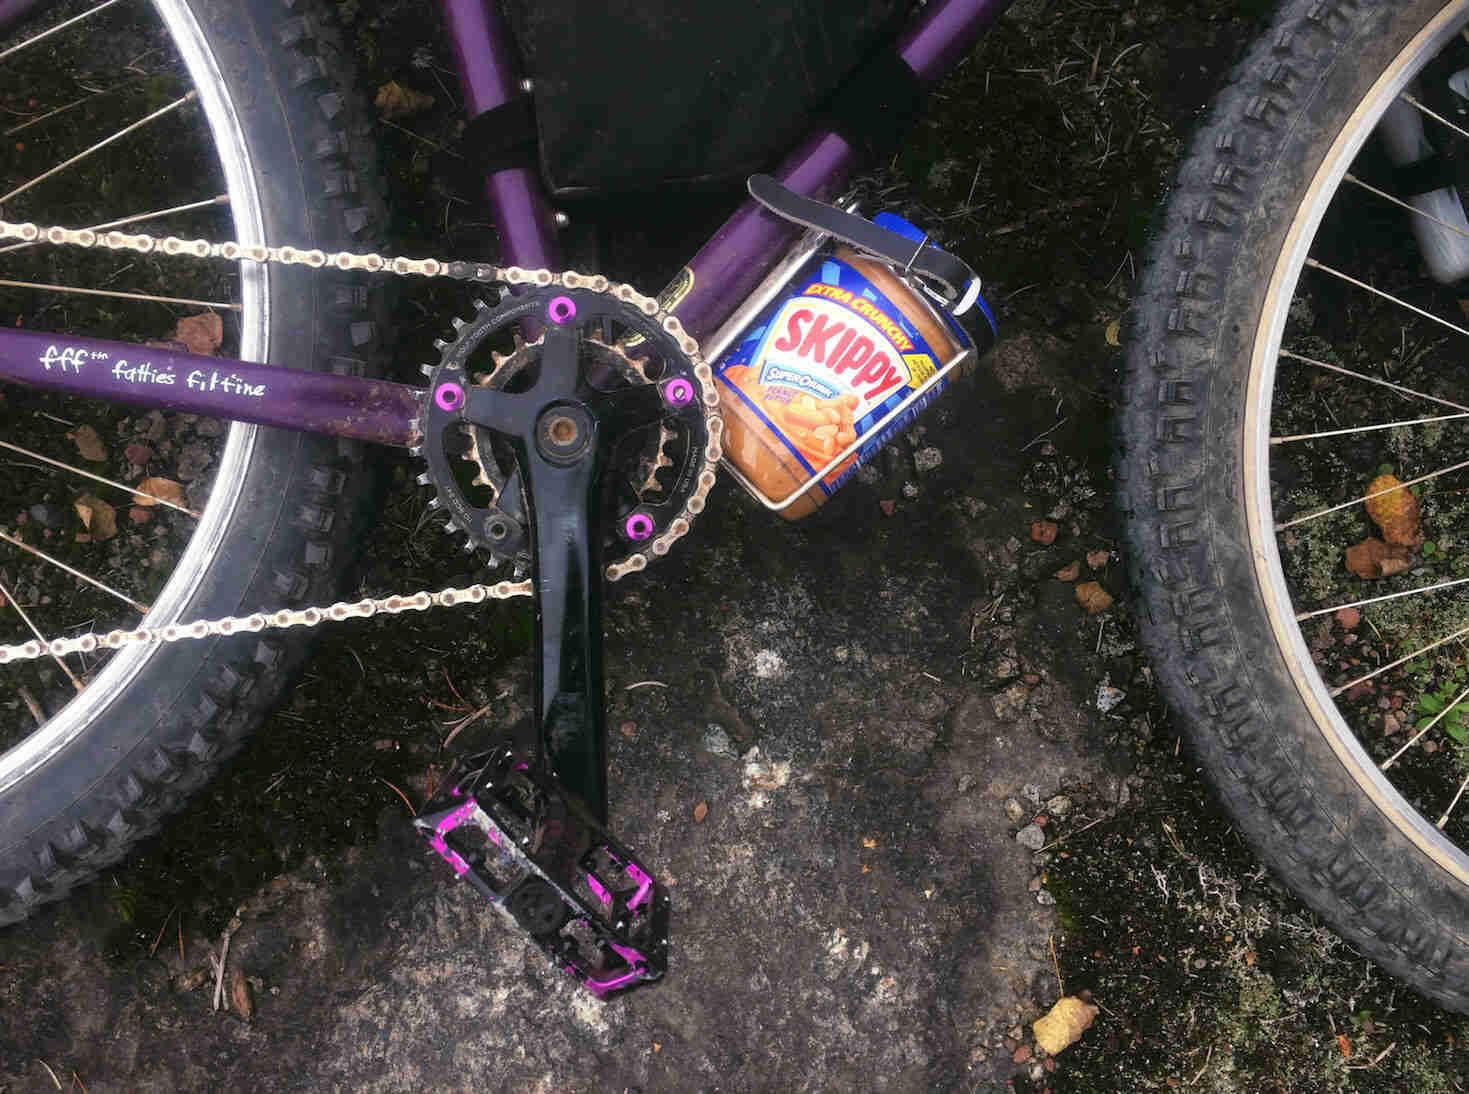 Downward, right side close up view of a Purple Surly bike with a jar of peanut butter in the water bottle cage